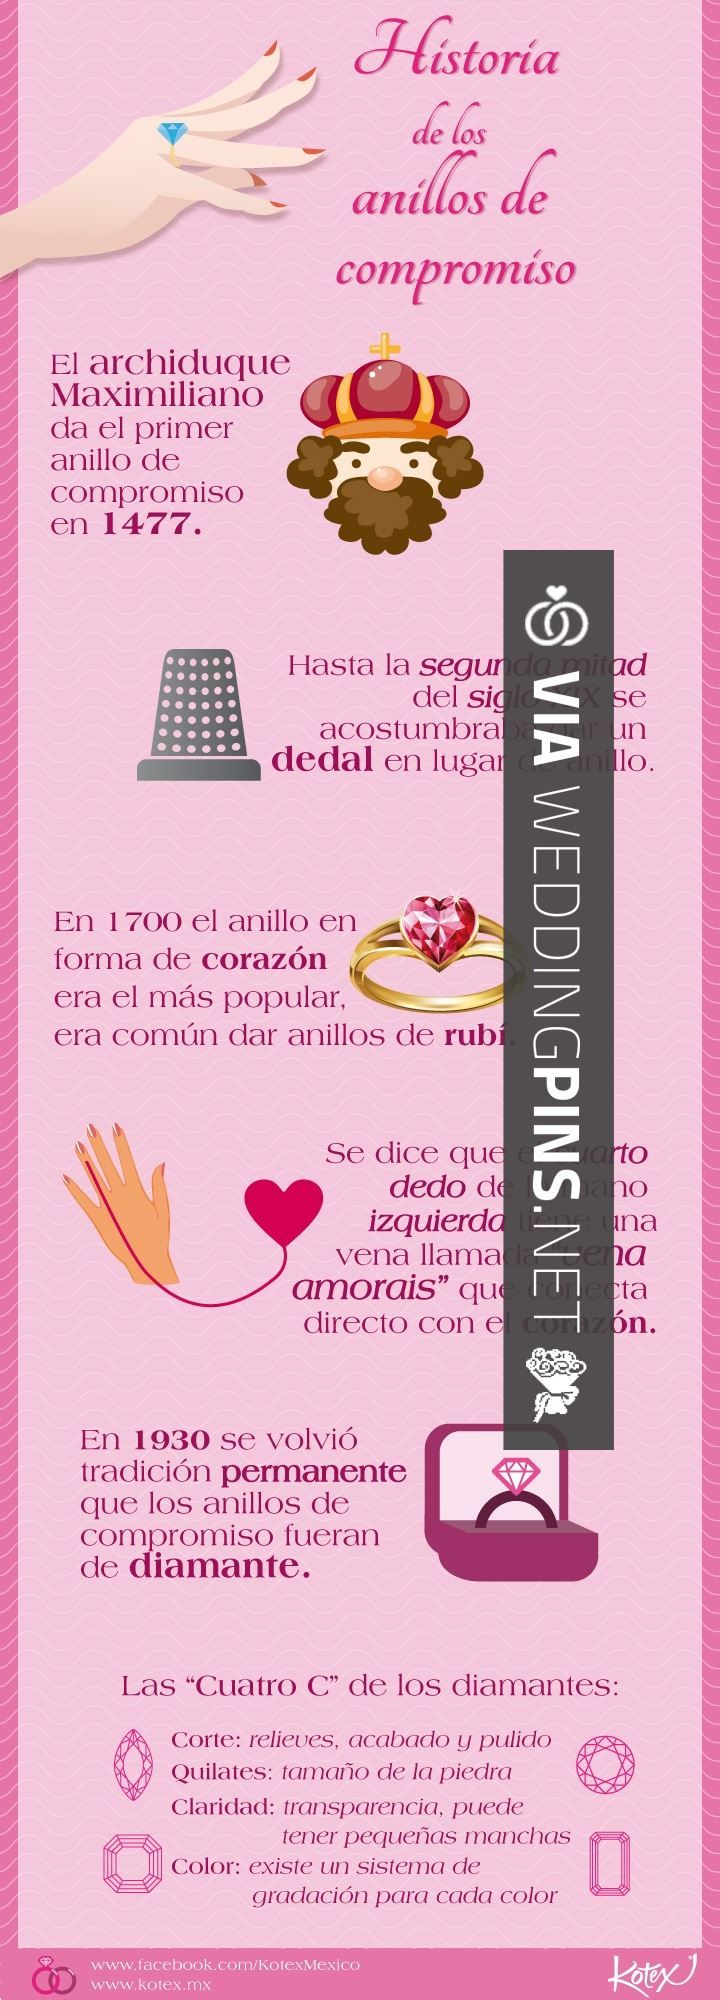 Amazing - Anillos de Boda historia_anillos_compromiso_info.jpg (720×2000) | CHECK OUT THESE OTHER COOL PICS OF GREAT Anillos de Boda AT WEDDINGPINS.NET | #AnillosdeBoda #Anillos #weddingrings #rings #engagementrings #boda #weddings #weddinginvitations #vows #tradition #nontraditional #events #forweddings #iloveweddings #romance #beauty #planners #fashion #weddingphotos #weddingpictures